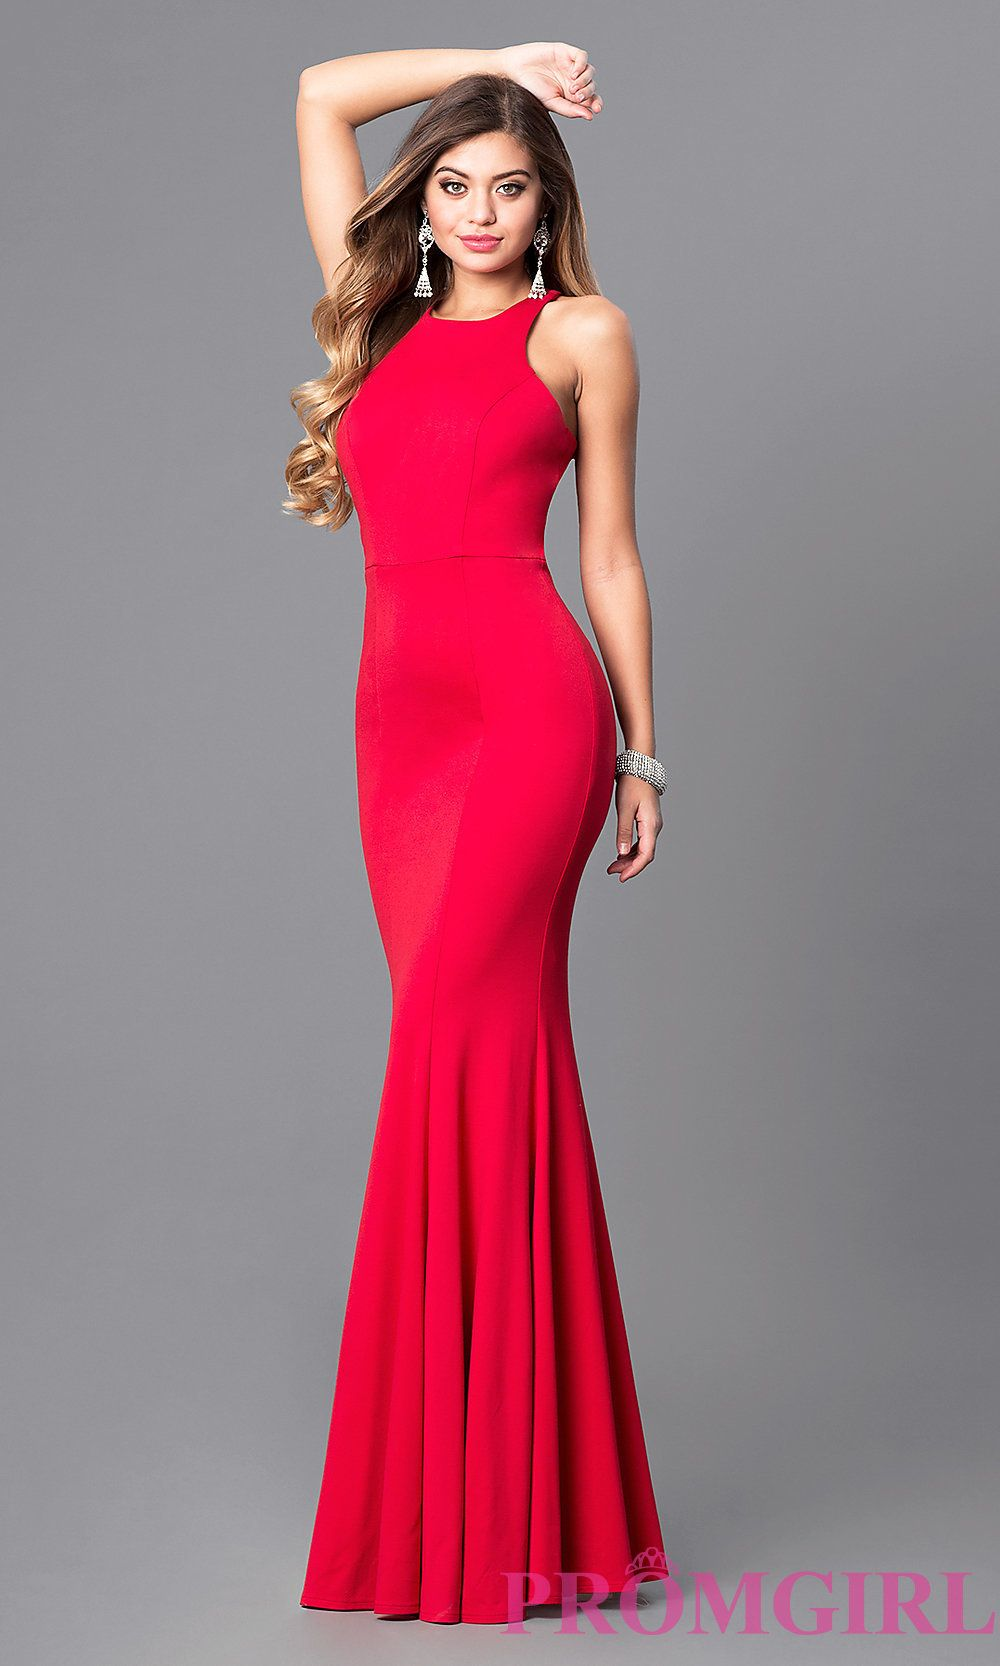 I like style dq from promgirl do you like prom dresses